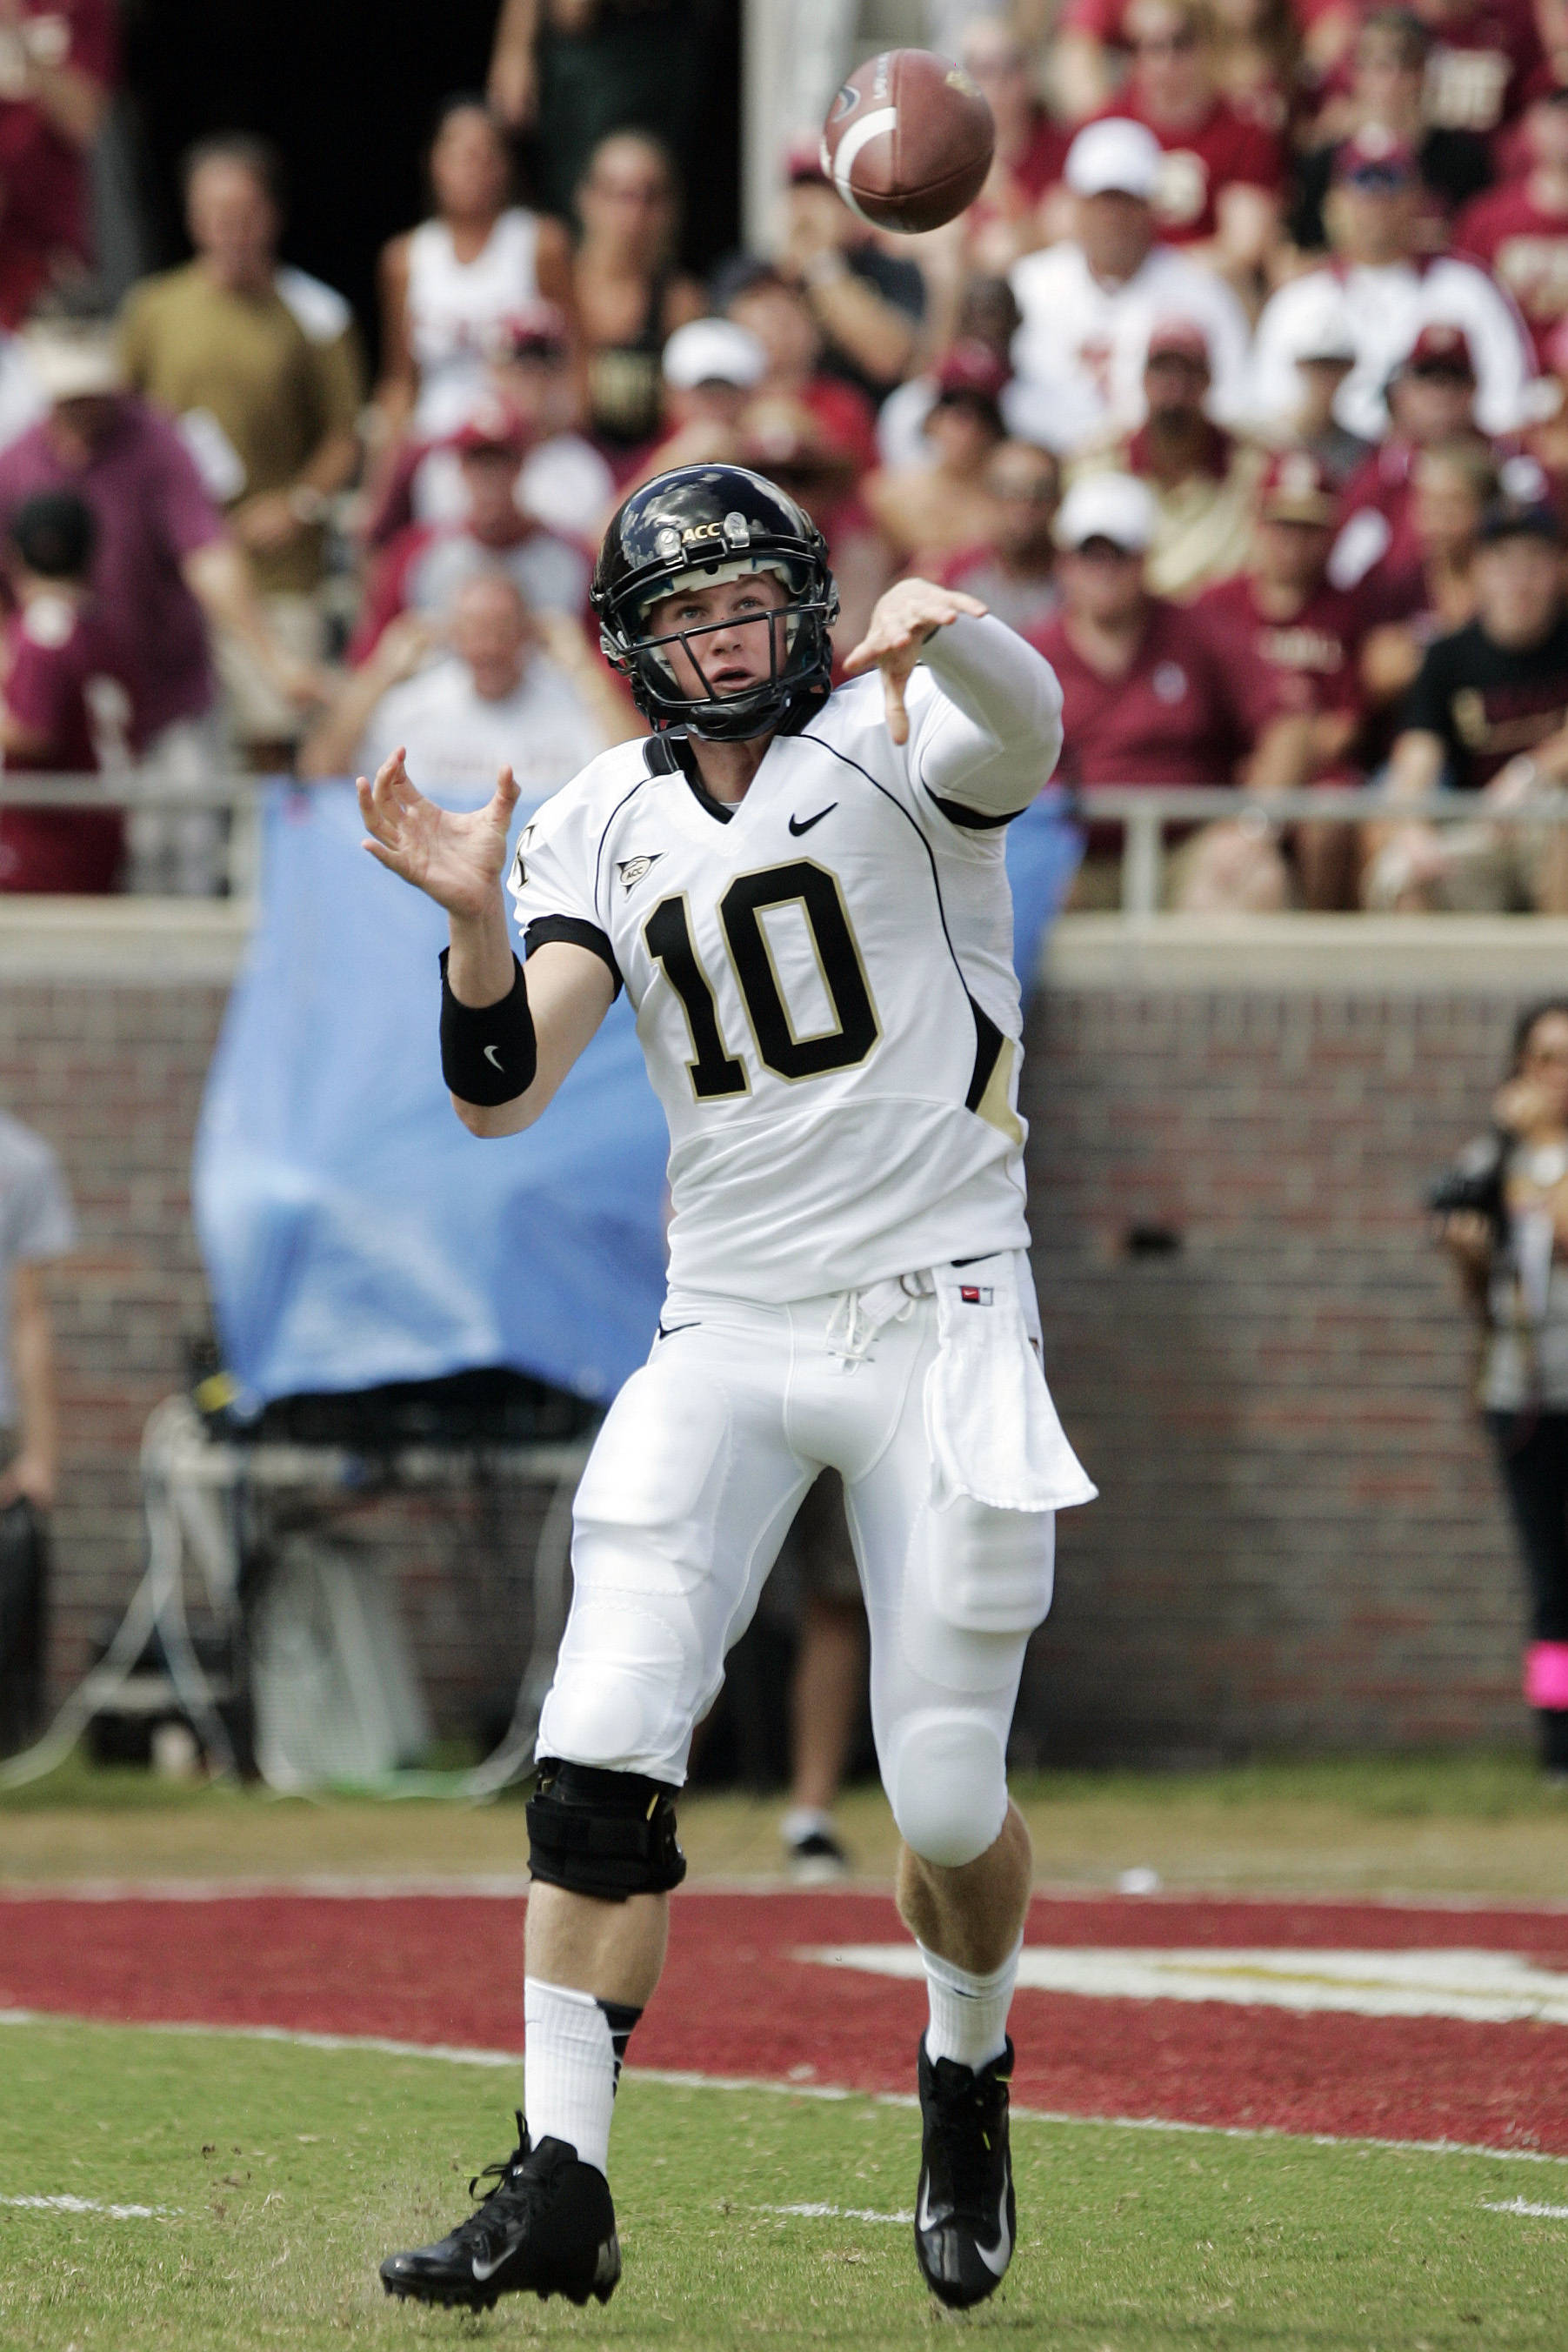 Wake Forest's Tanner Price attempts a pass against Florida State. (AP Photo/Steve Cannon)